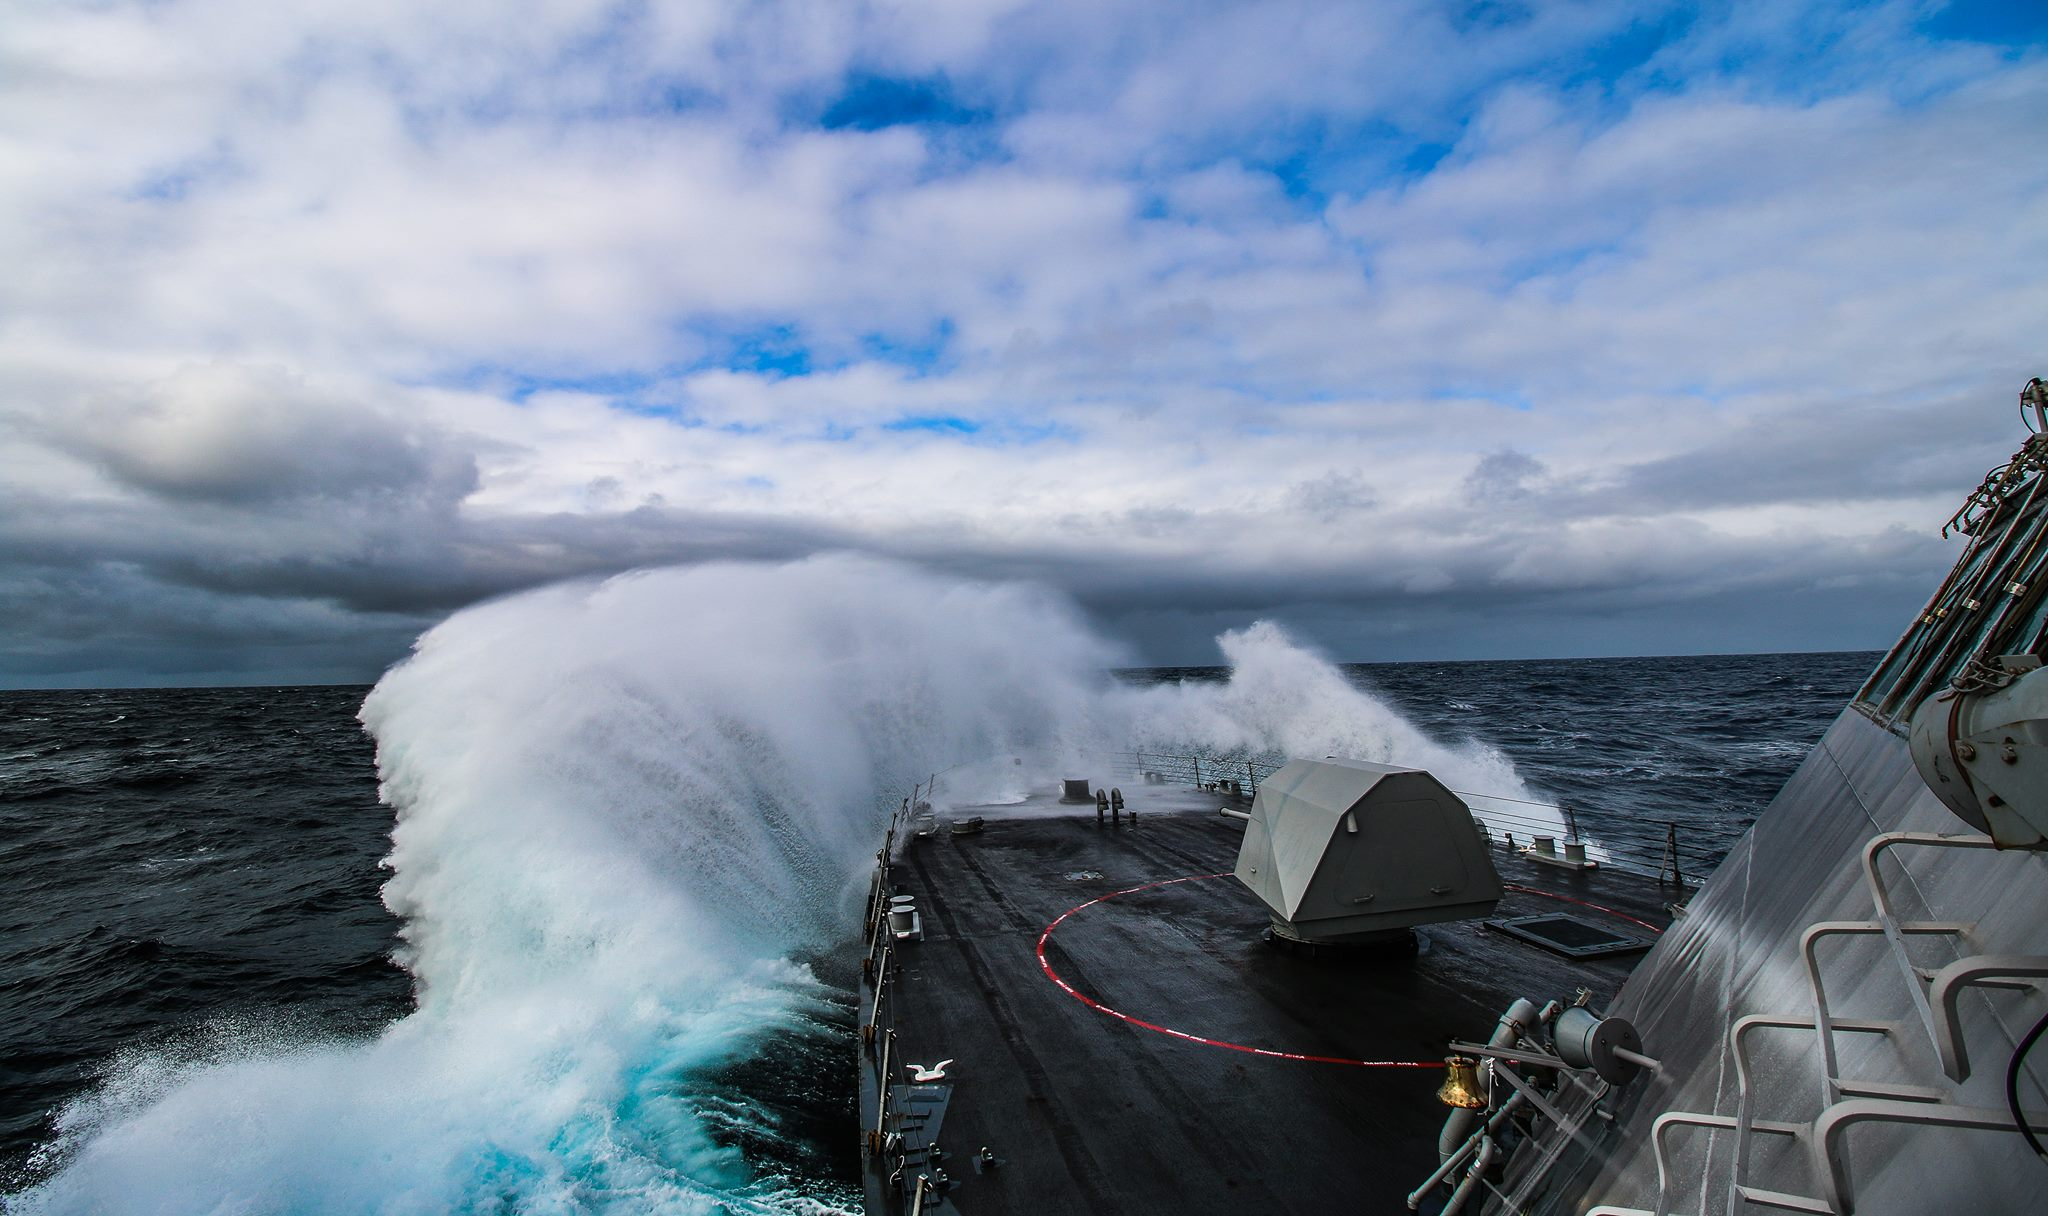 The littoral combat ship USS Freedom (LCS 1) is underway off the coast of Oregon conducting rough water trials on March 17, 2015. US Navy photo.